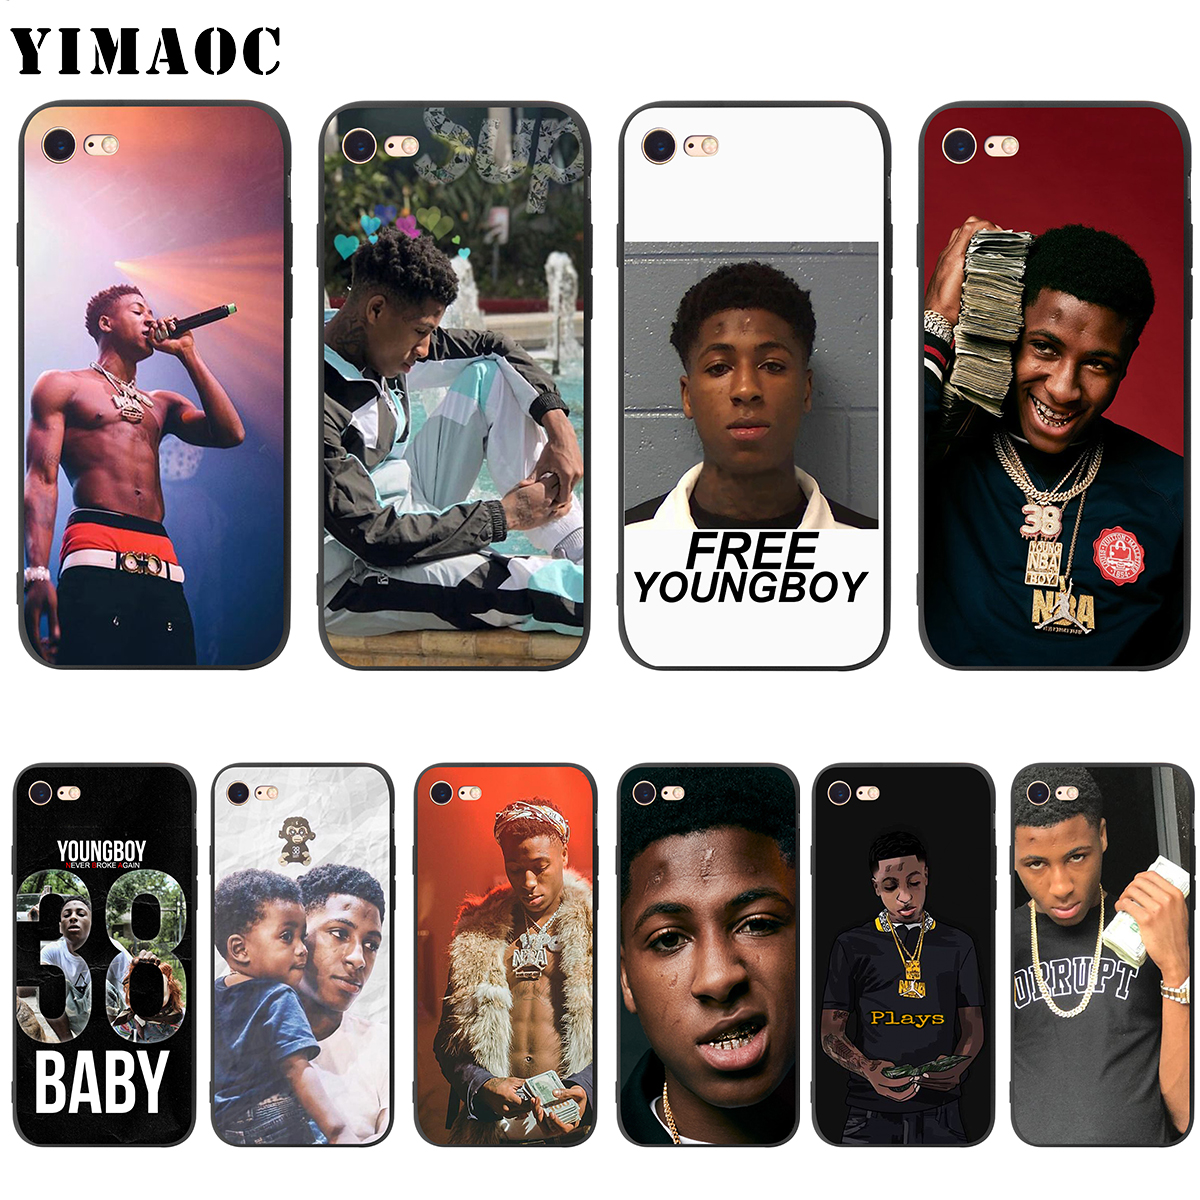 finest selection 96623 26663 US $1.81 45% OFF|YIMAOC Youngboy Never Broke Again Soft Silicone Case for  iPhone XS Max XR X 8 7 6 6S Plus 5 5s se-in Fitted Cases from Cellphones &  ...